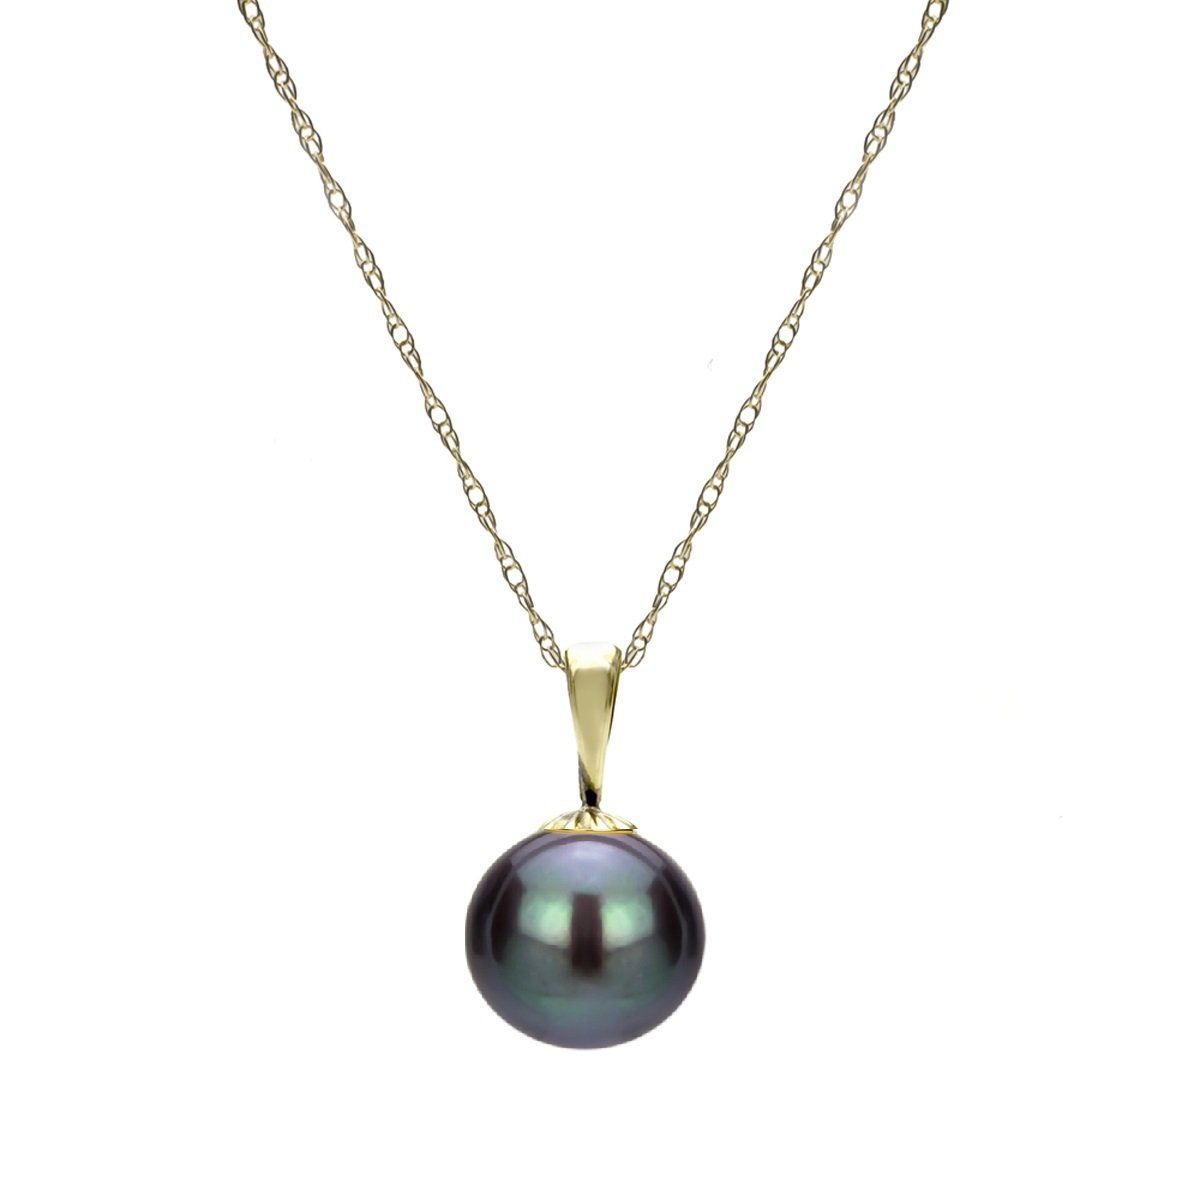 14K White Gold or Yellow Gold Dyed Black Freshwater Cultured Pearl Necklace Chain Pendant Jewelry